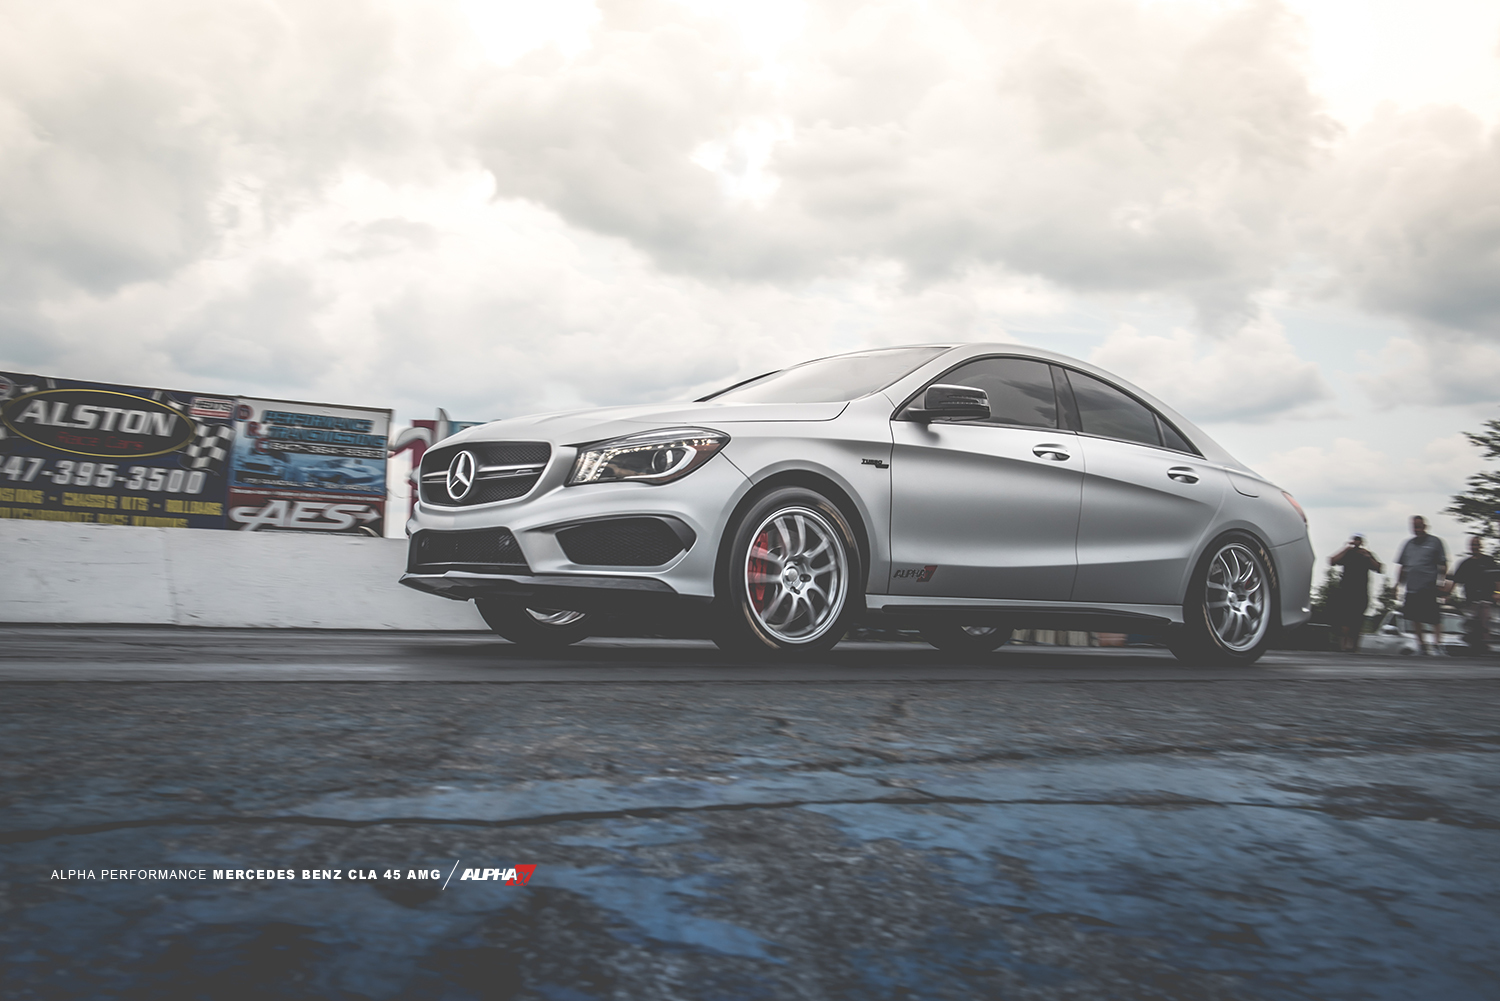 2014 Silver Mercedes-Benz CLA45 AMG  picture, mods, upgrades